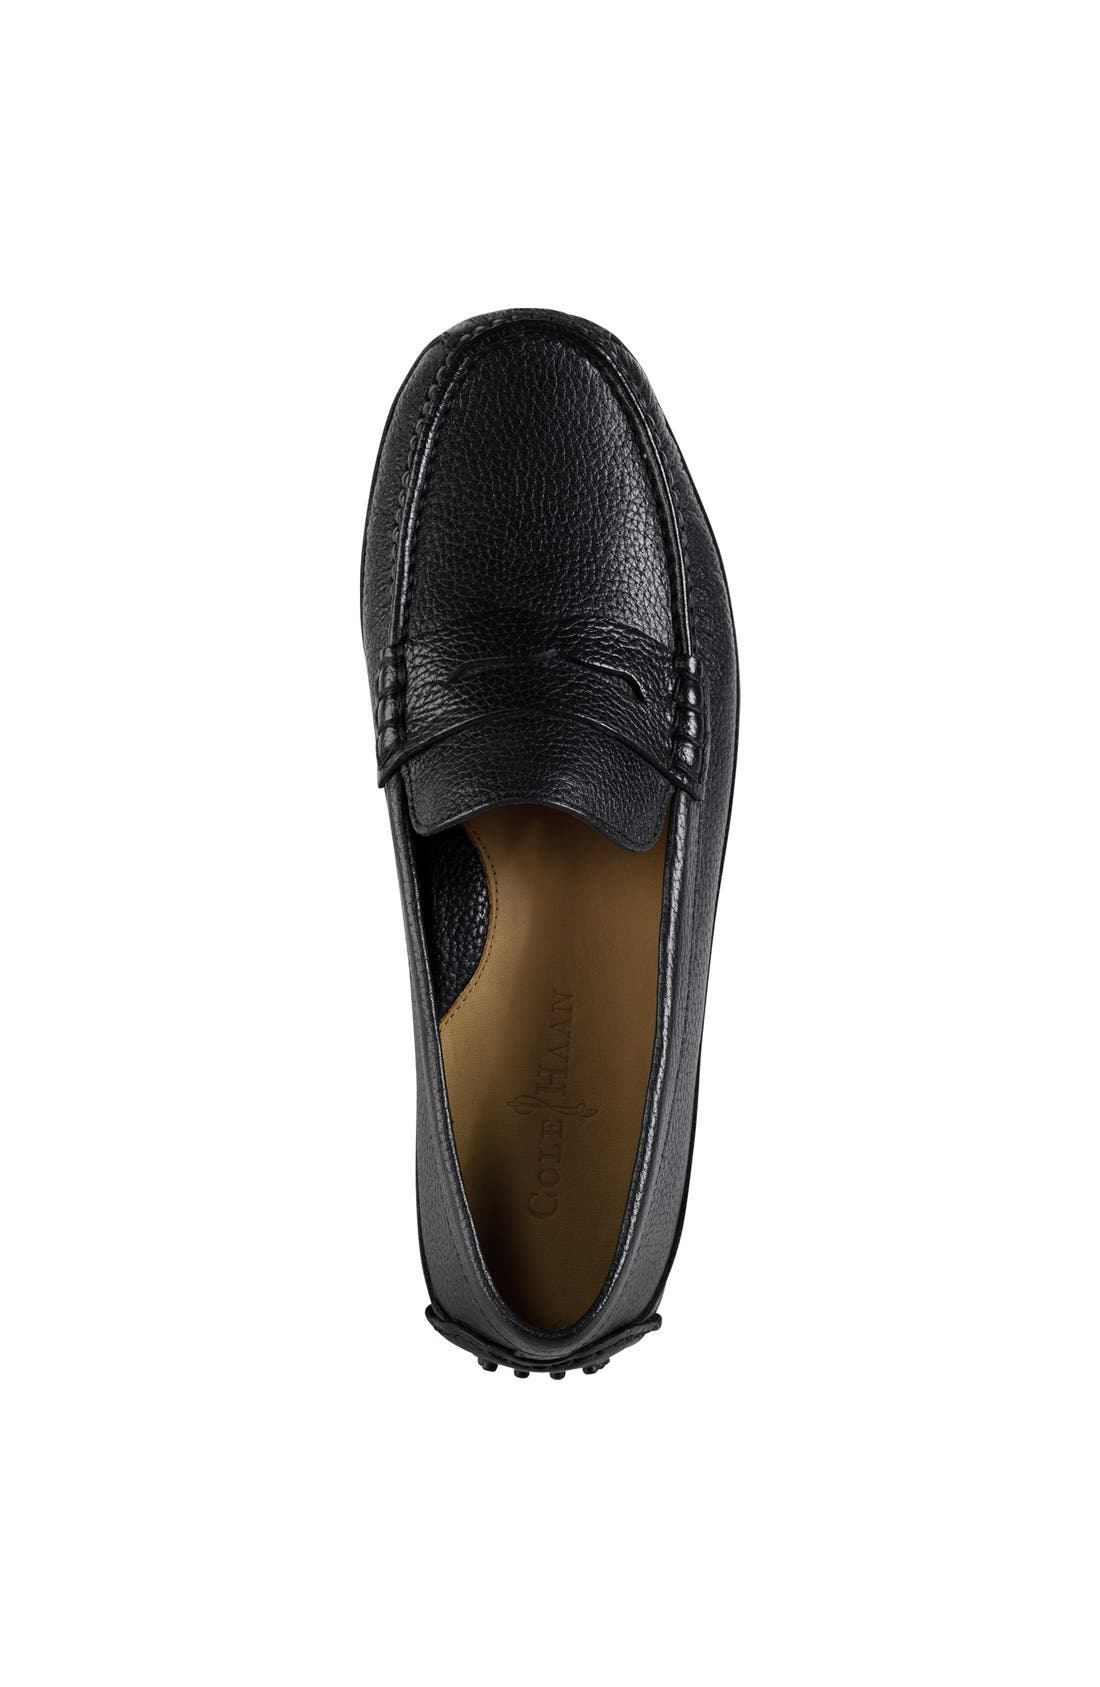 COLE HAAN, 'Grant Canoe' Penny Loafer, Alternate thumbnail 2, color, 001